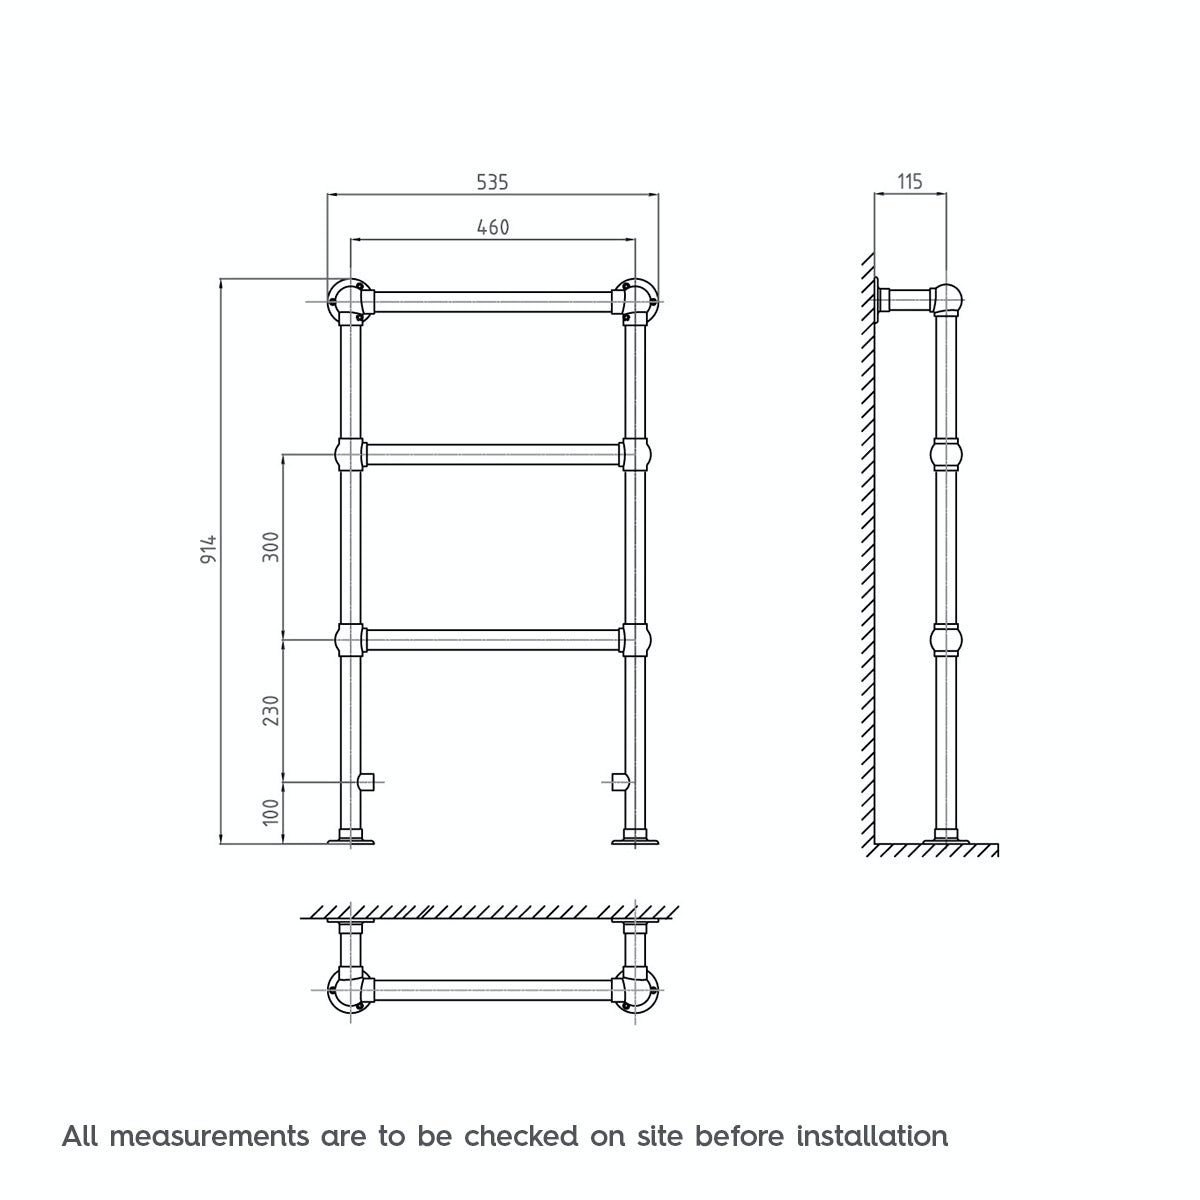 Dimensions for The Bath Co. Winchester heated towel rail 914 x 535